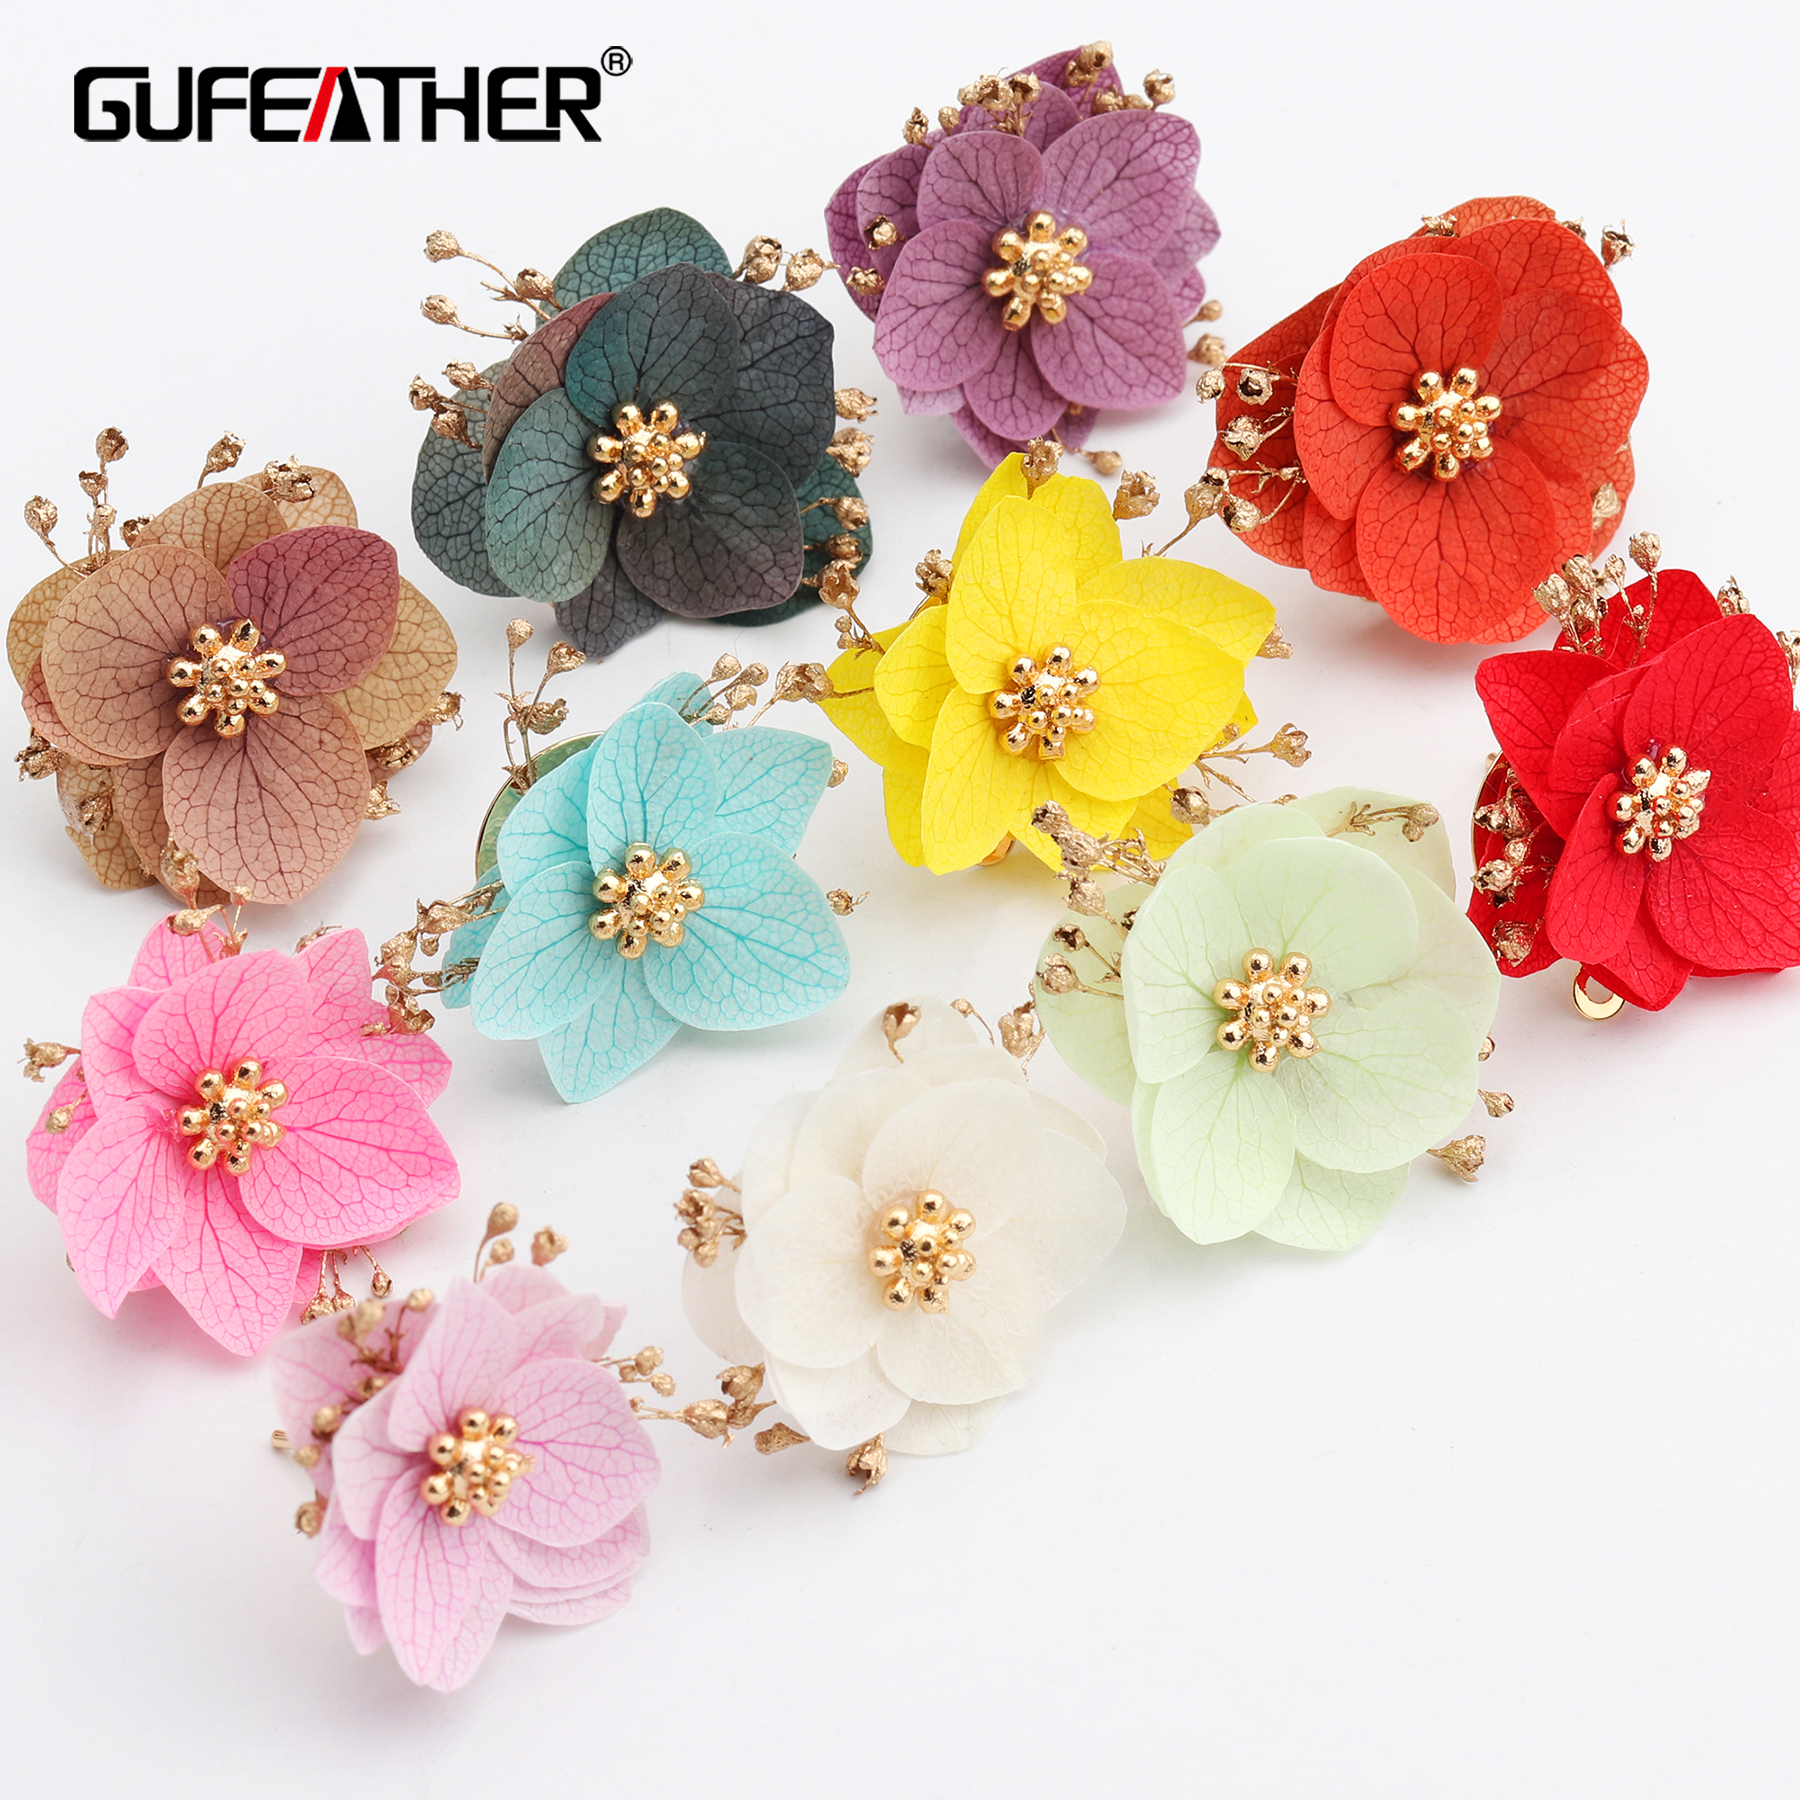 GUFEATHER M602,jewelry Accessories,dried Flower,diy Pendant,jewelry Findings,hand Made,diy Earrings,jewelry Making,6pcs/lot